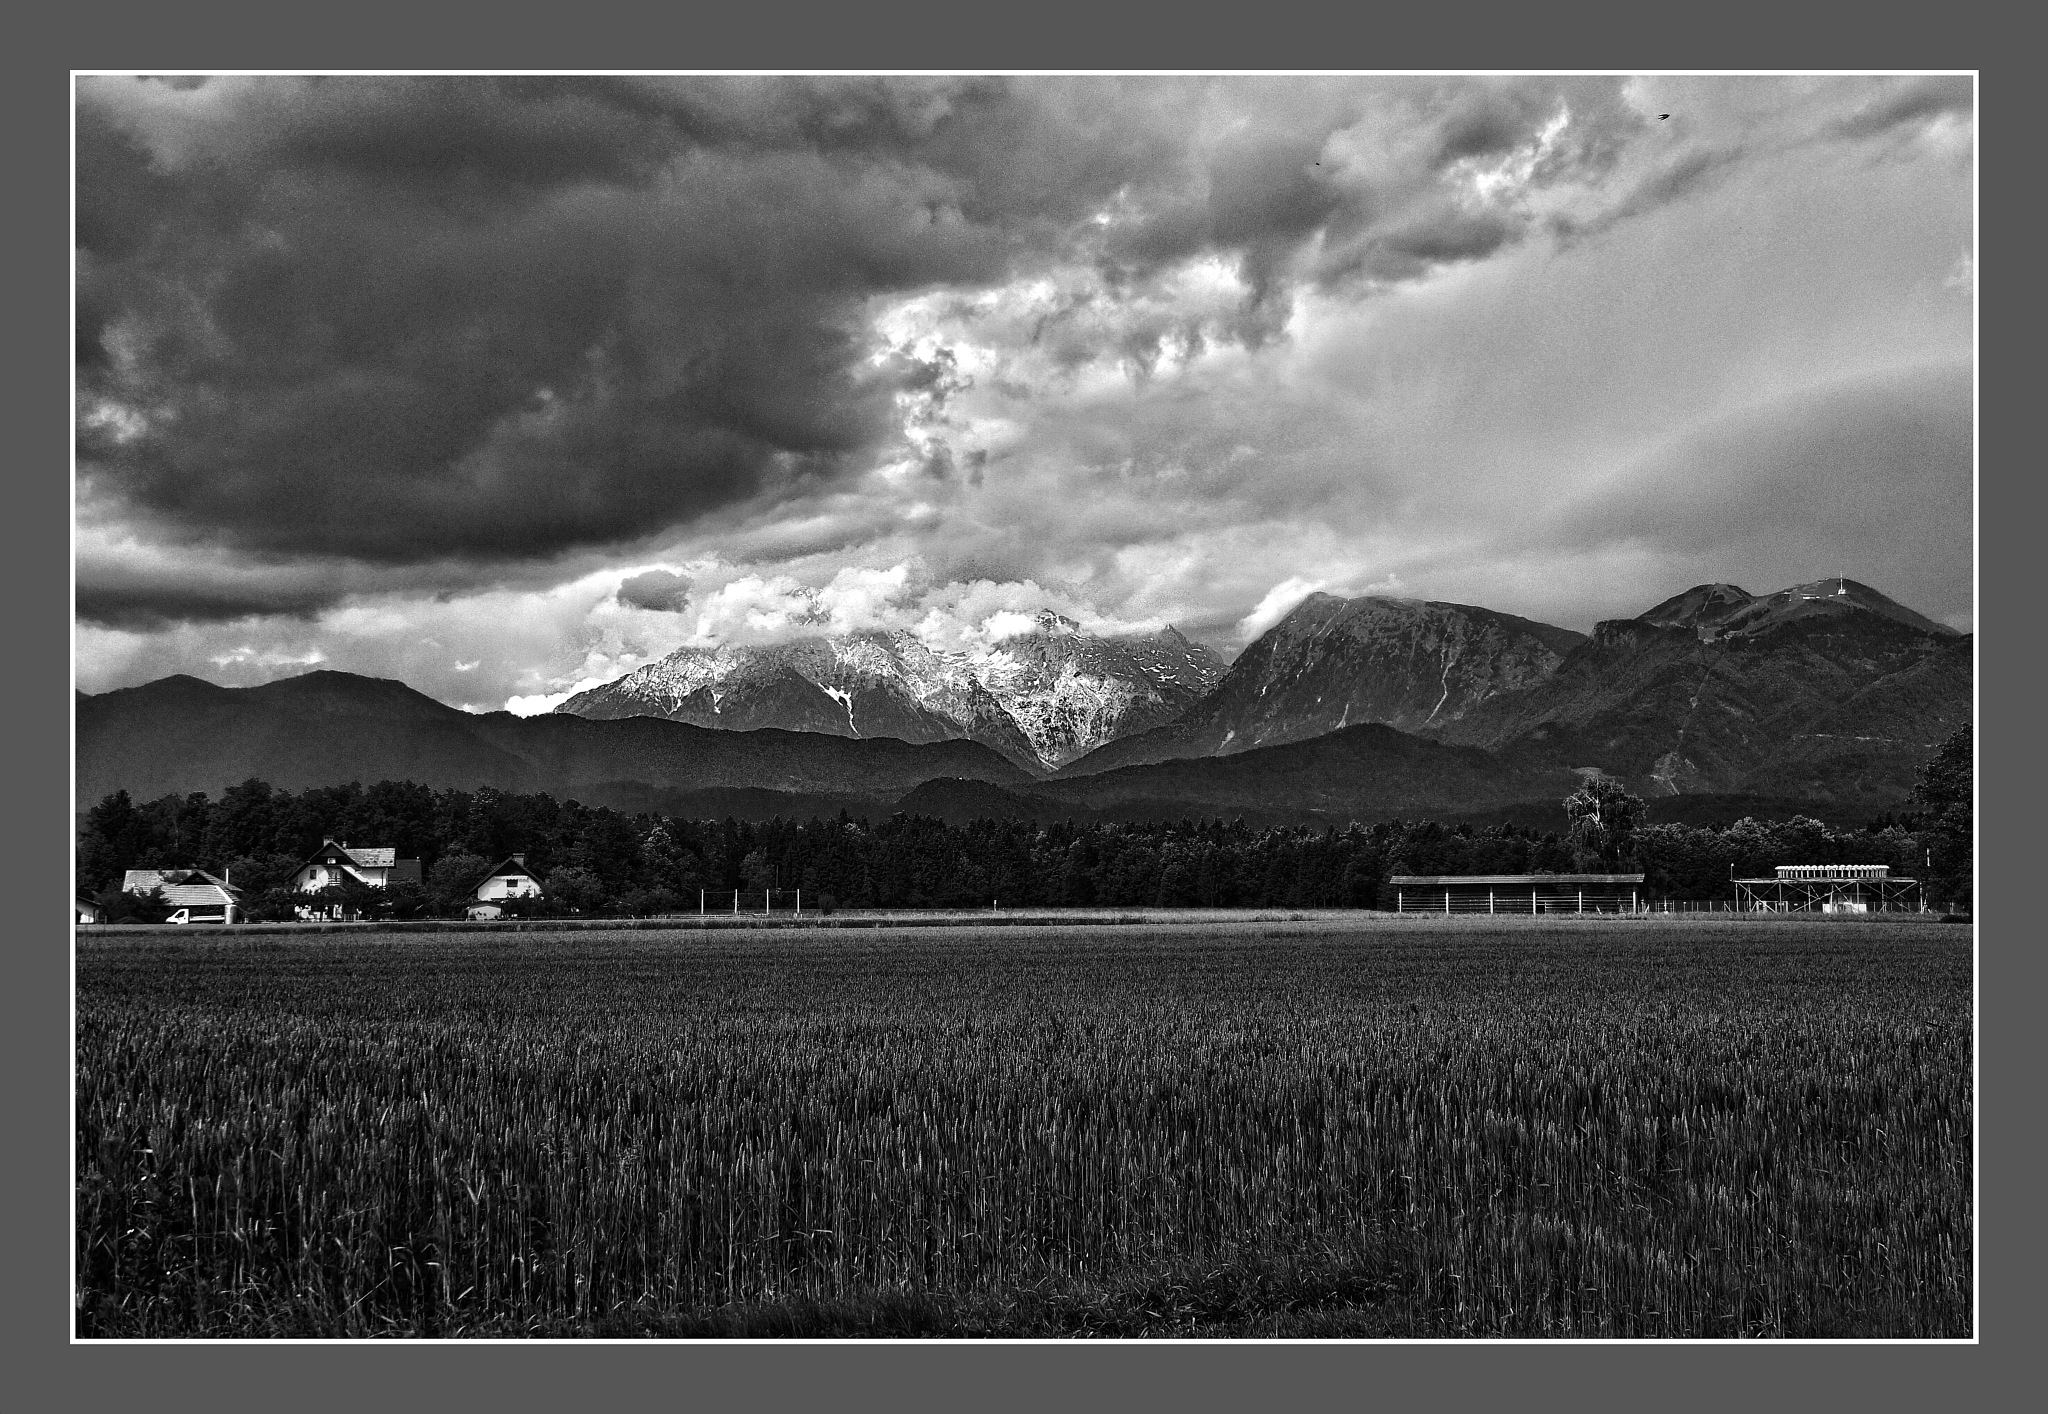 the storm is coming by darko1965